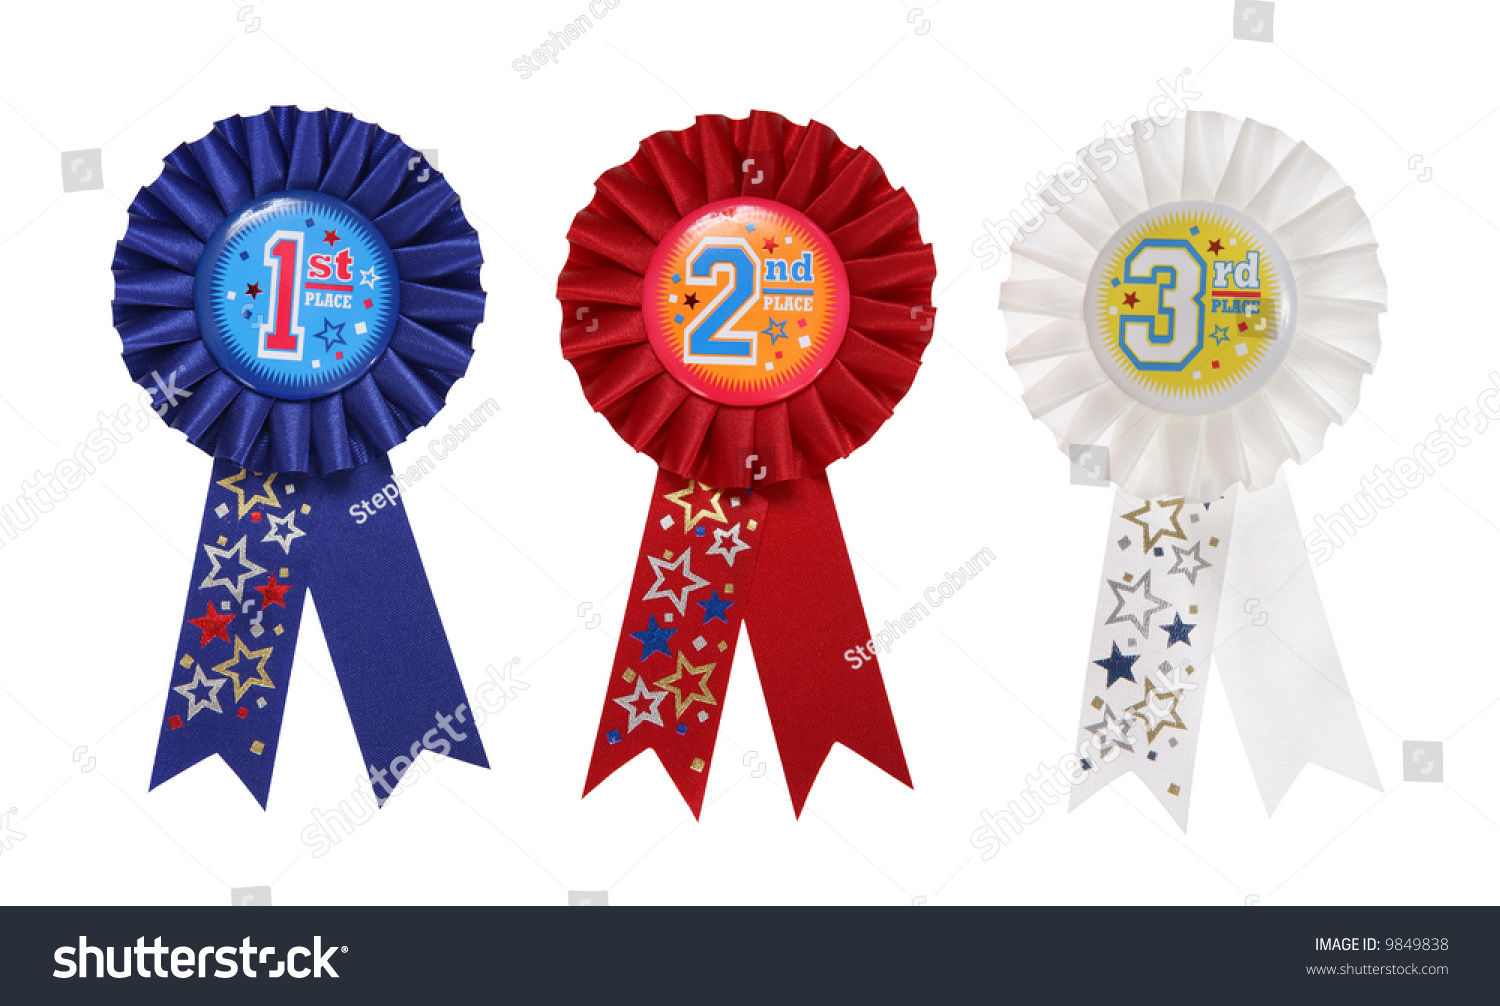 First second third place award ribbons stock photo 9849838 for 1st prize ribbon template